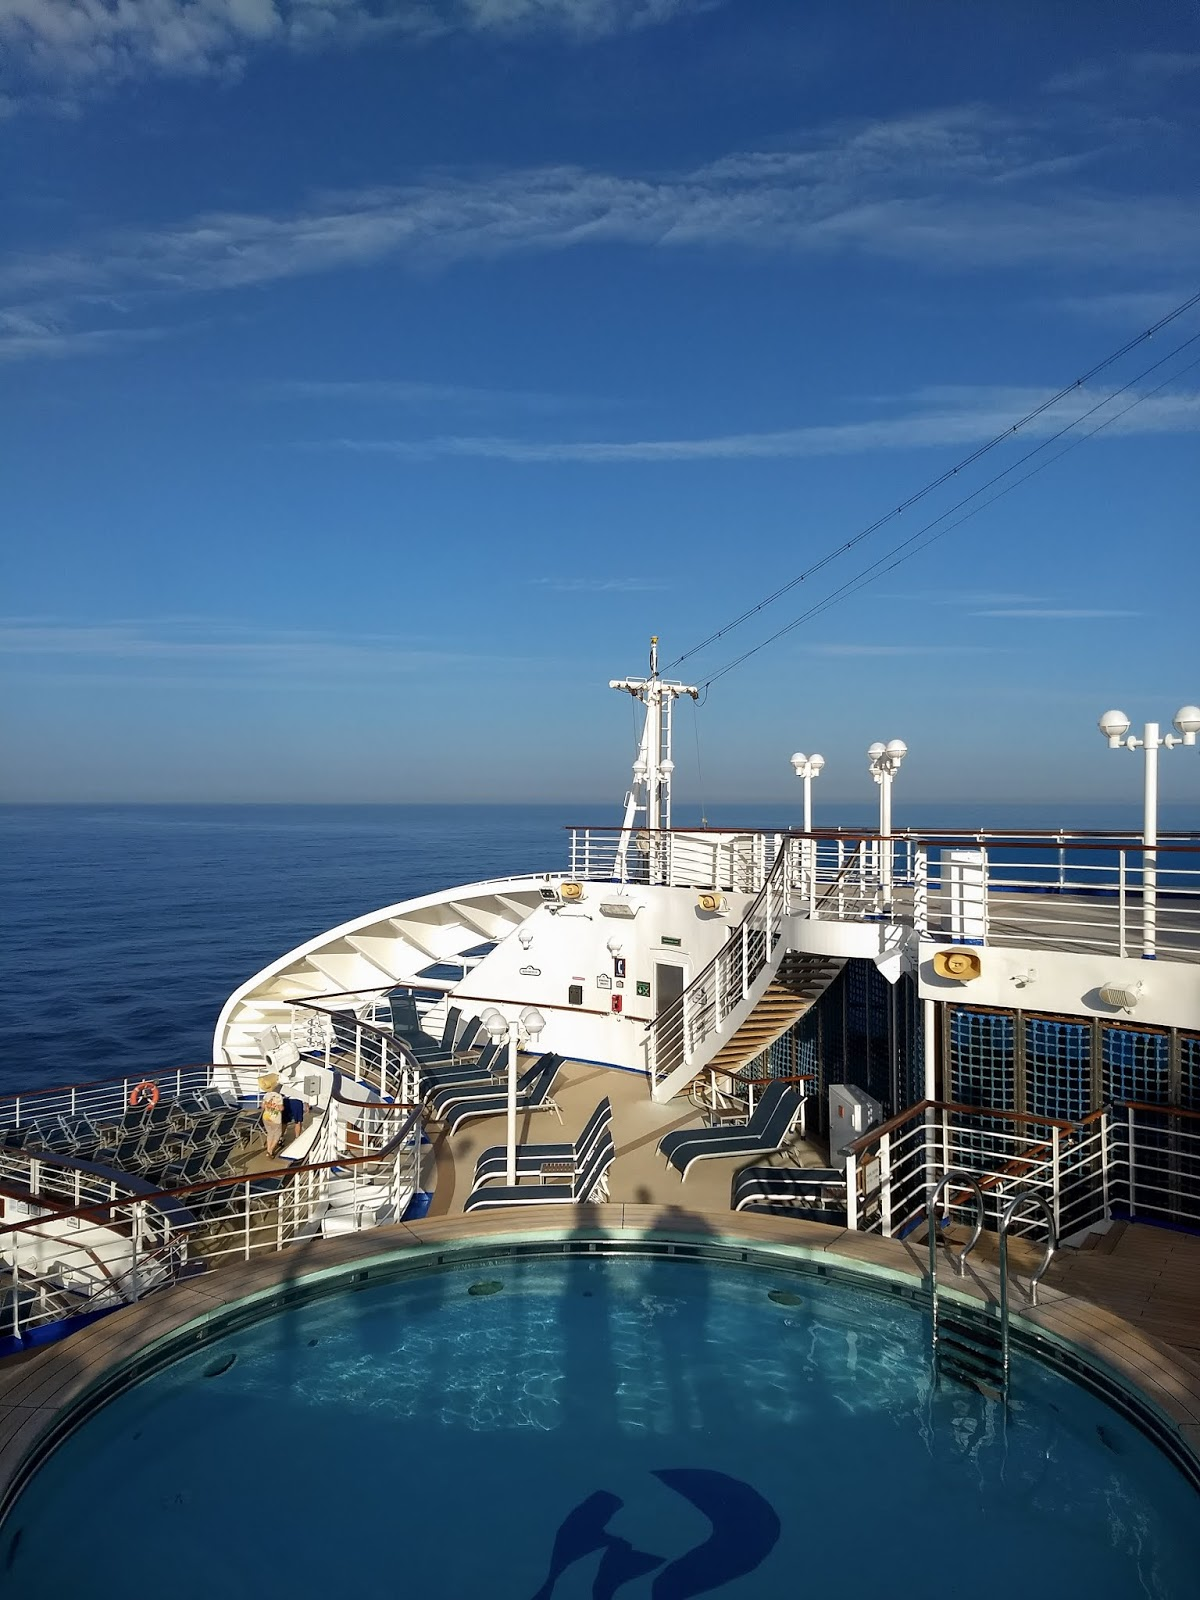 Blue sky, ocean and pool from the Sapphire Princess cruise ship.